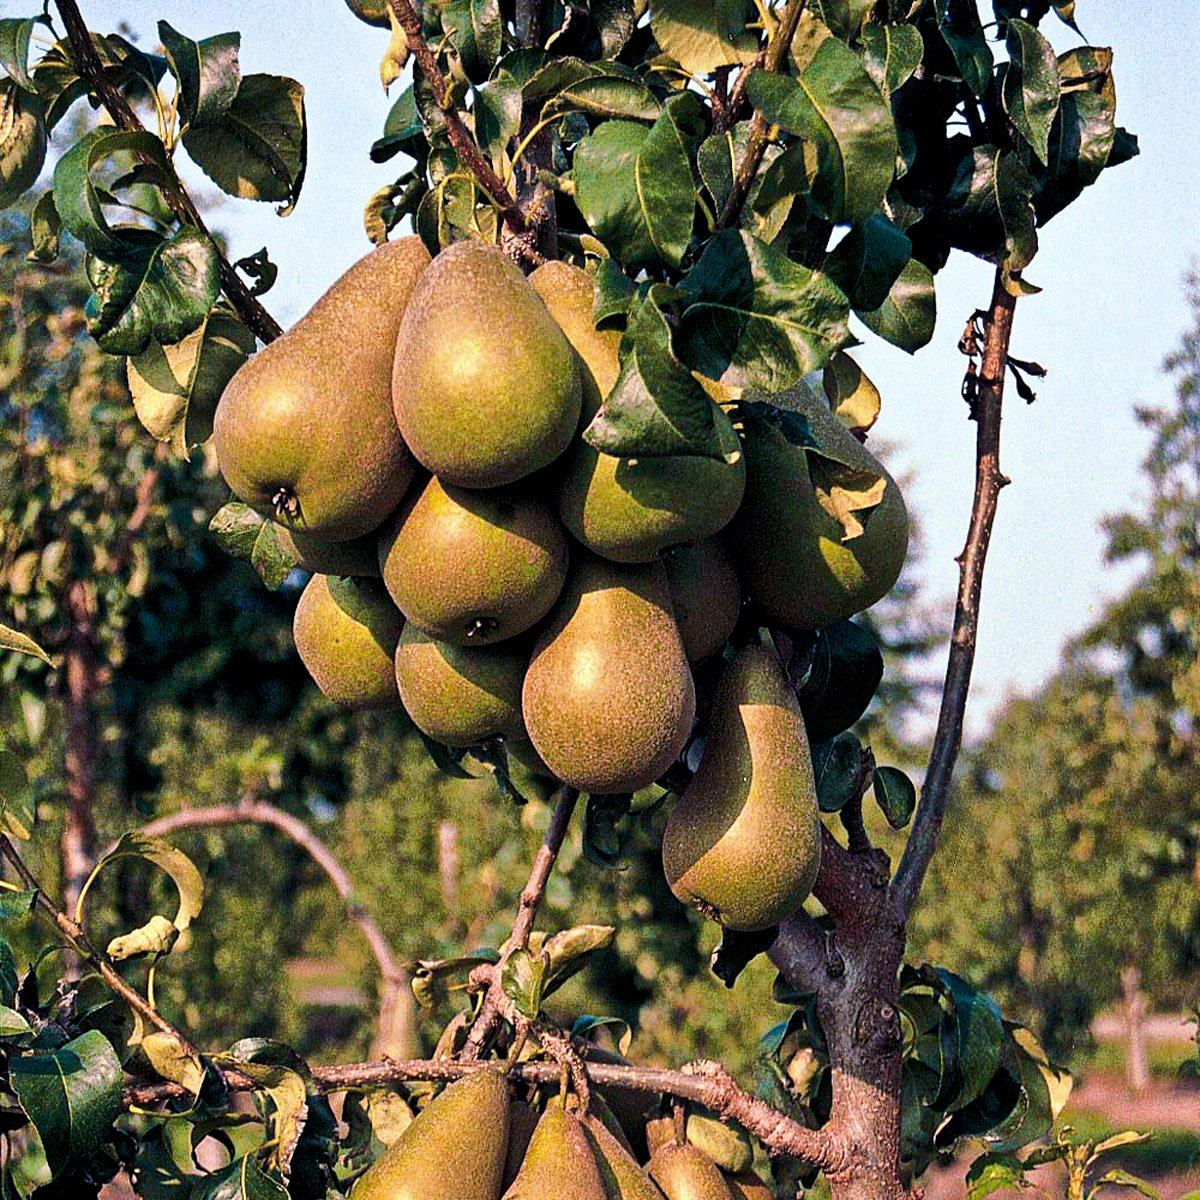 pear_tree_field_garden_branch_fruit1-2